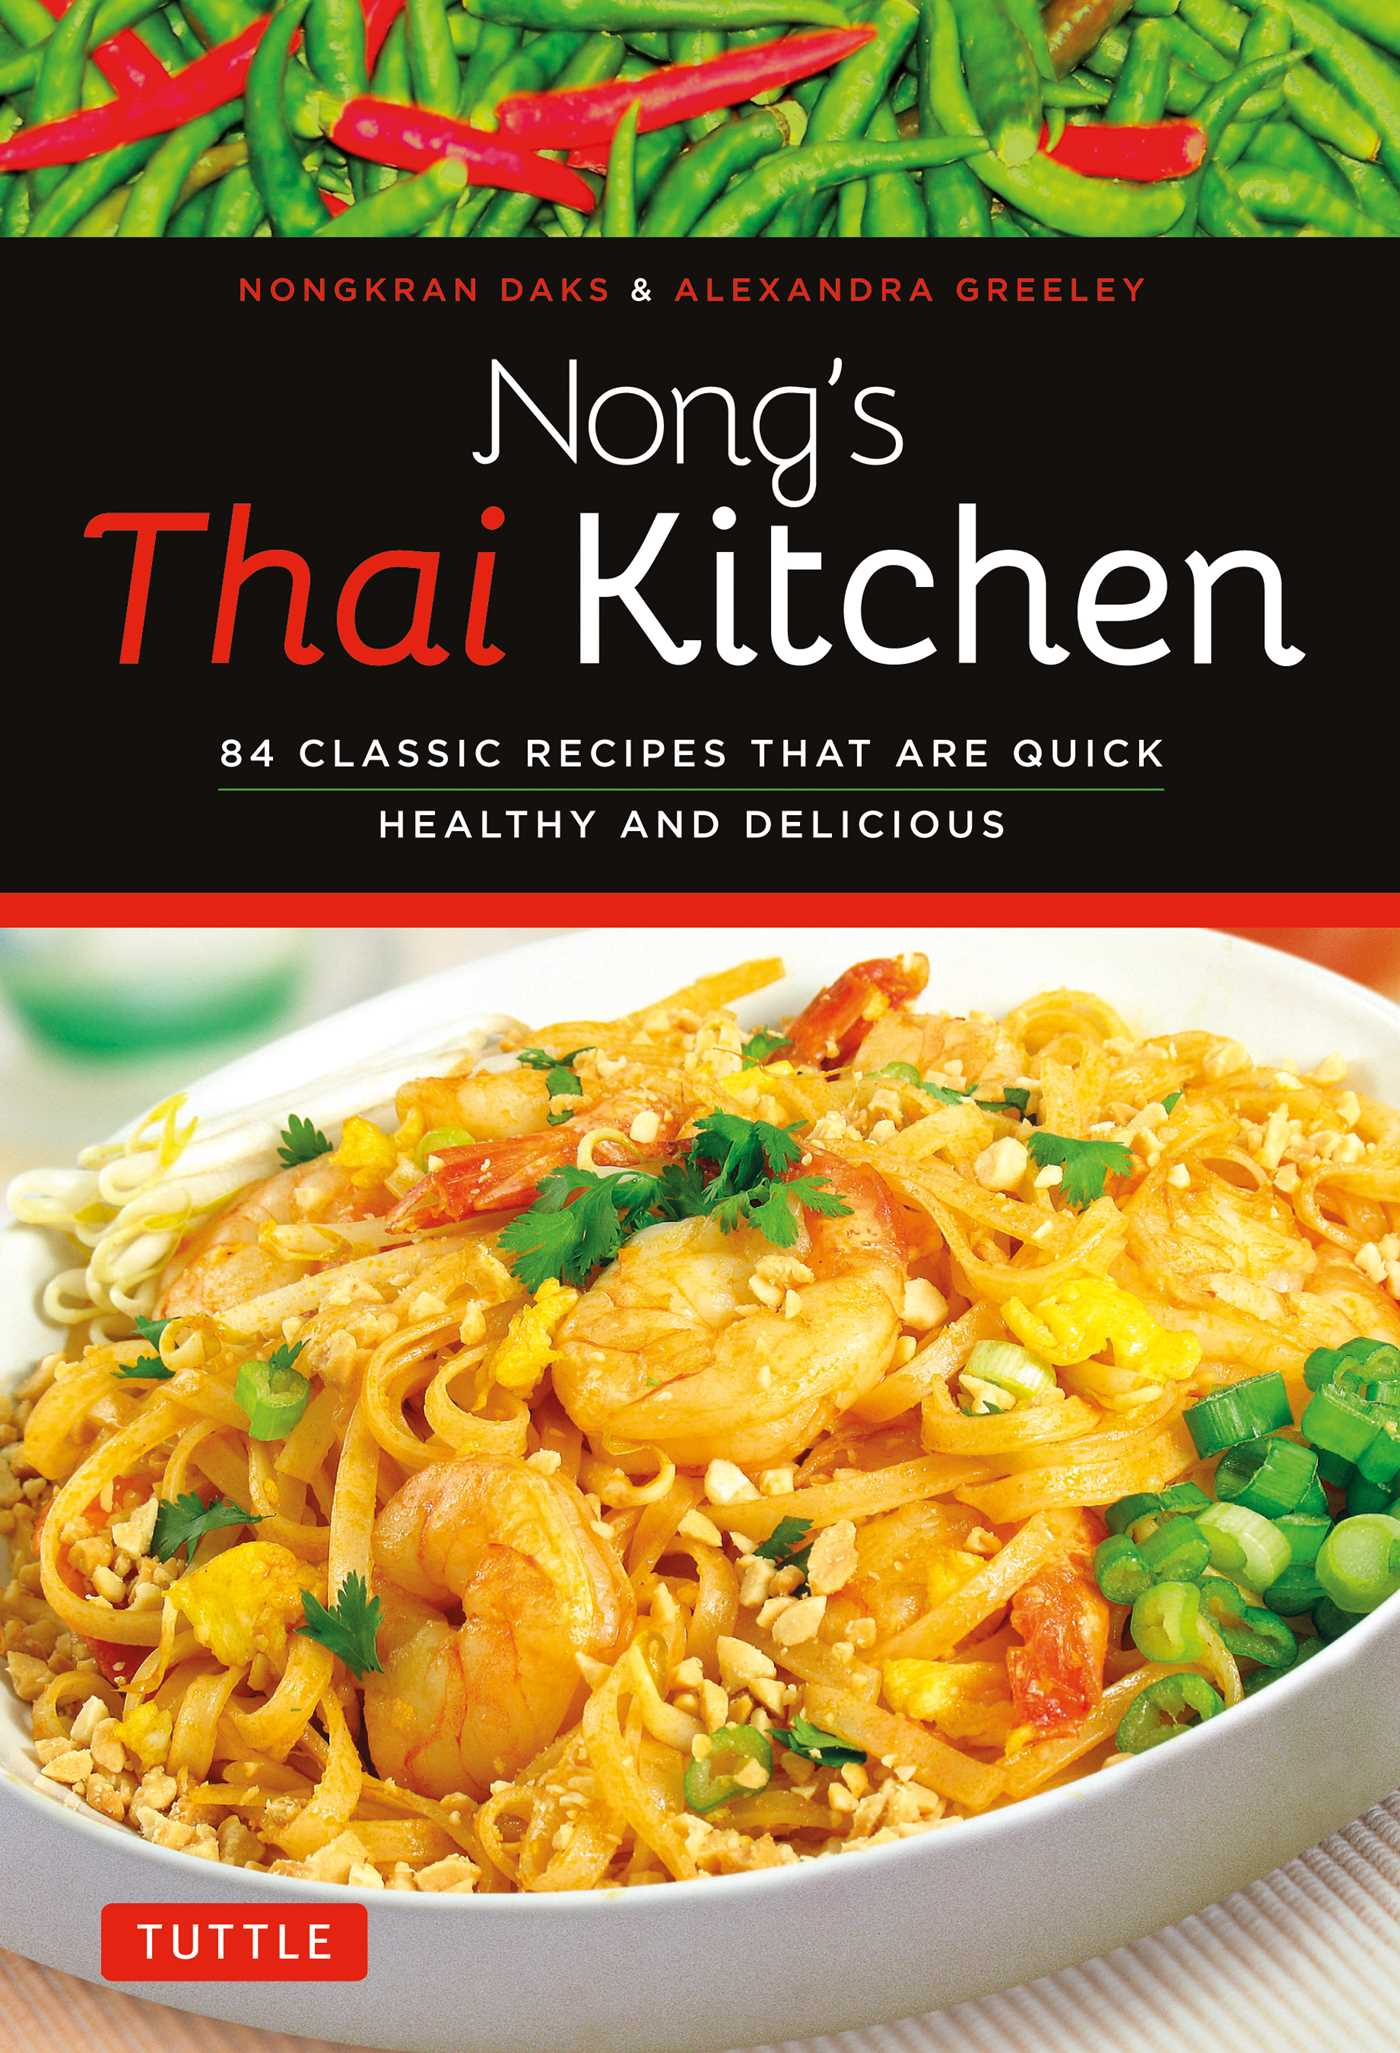 nong s thai kitchen book by nongkran daks alexandra greeley